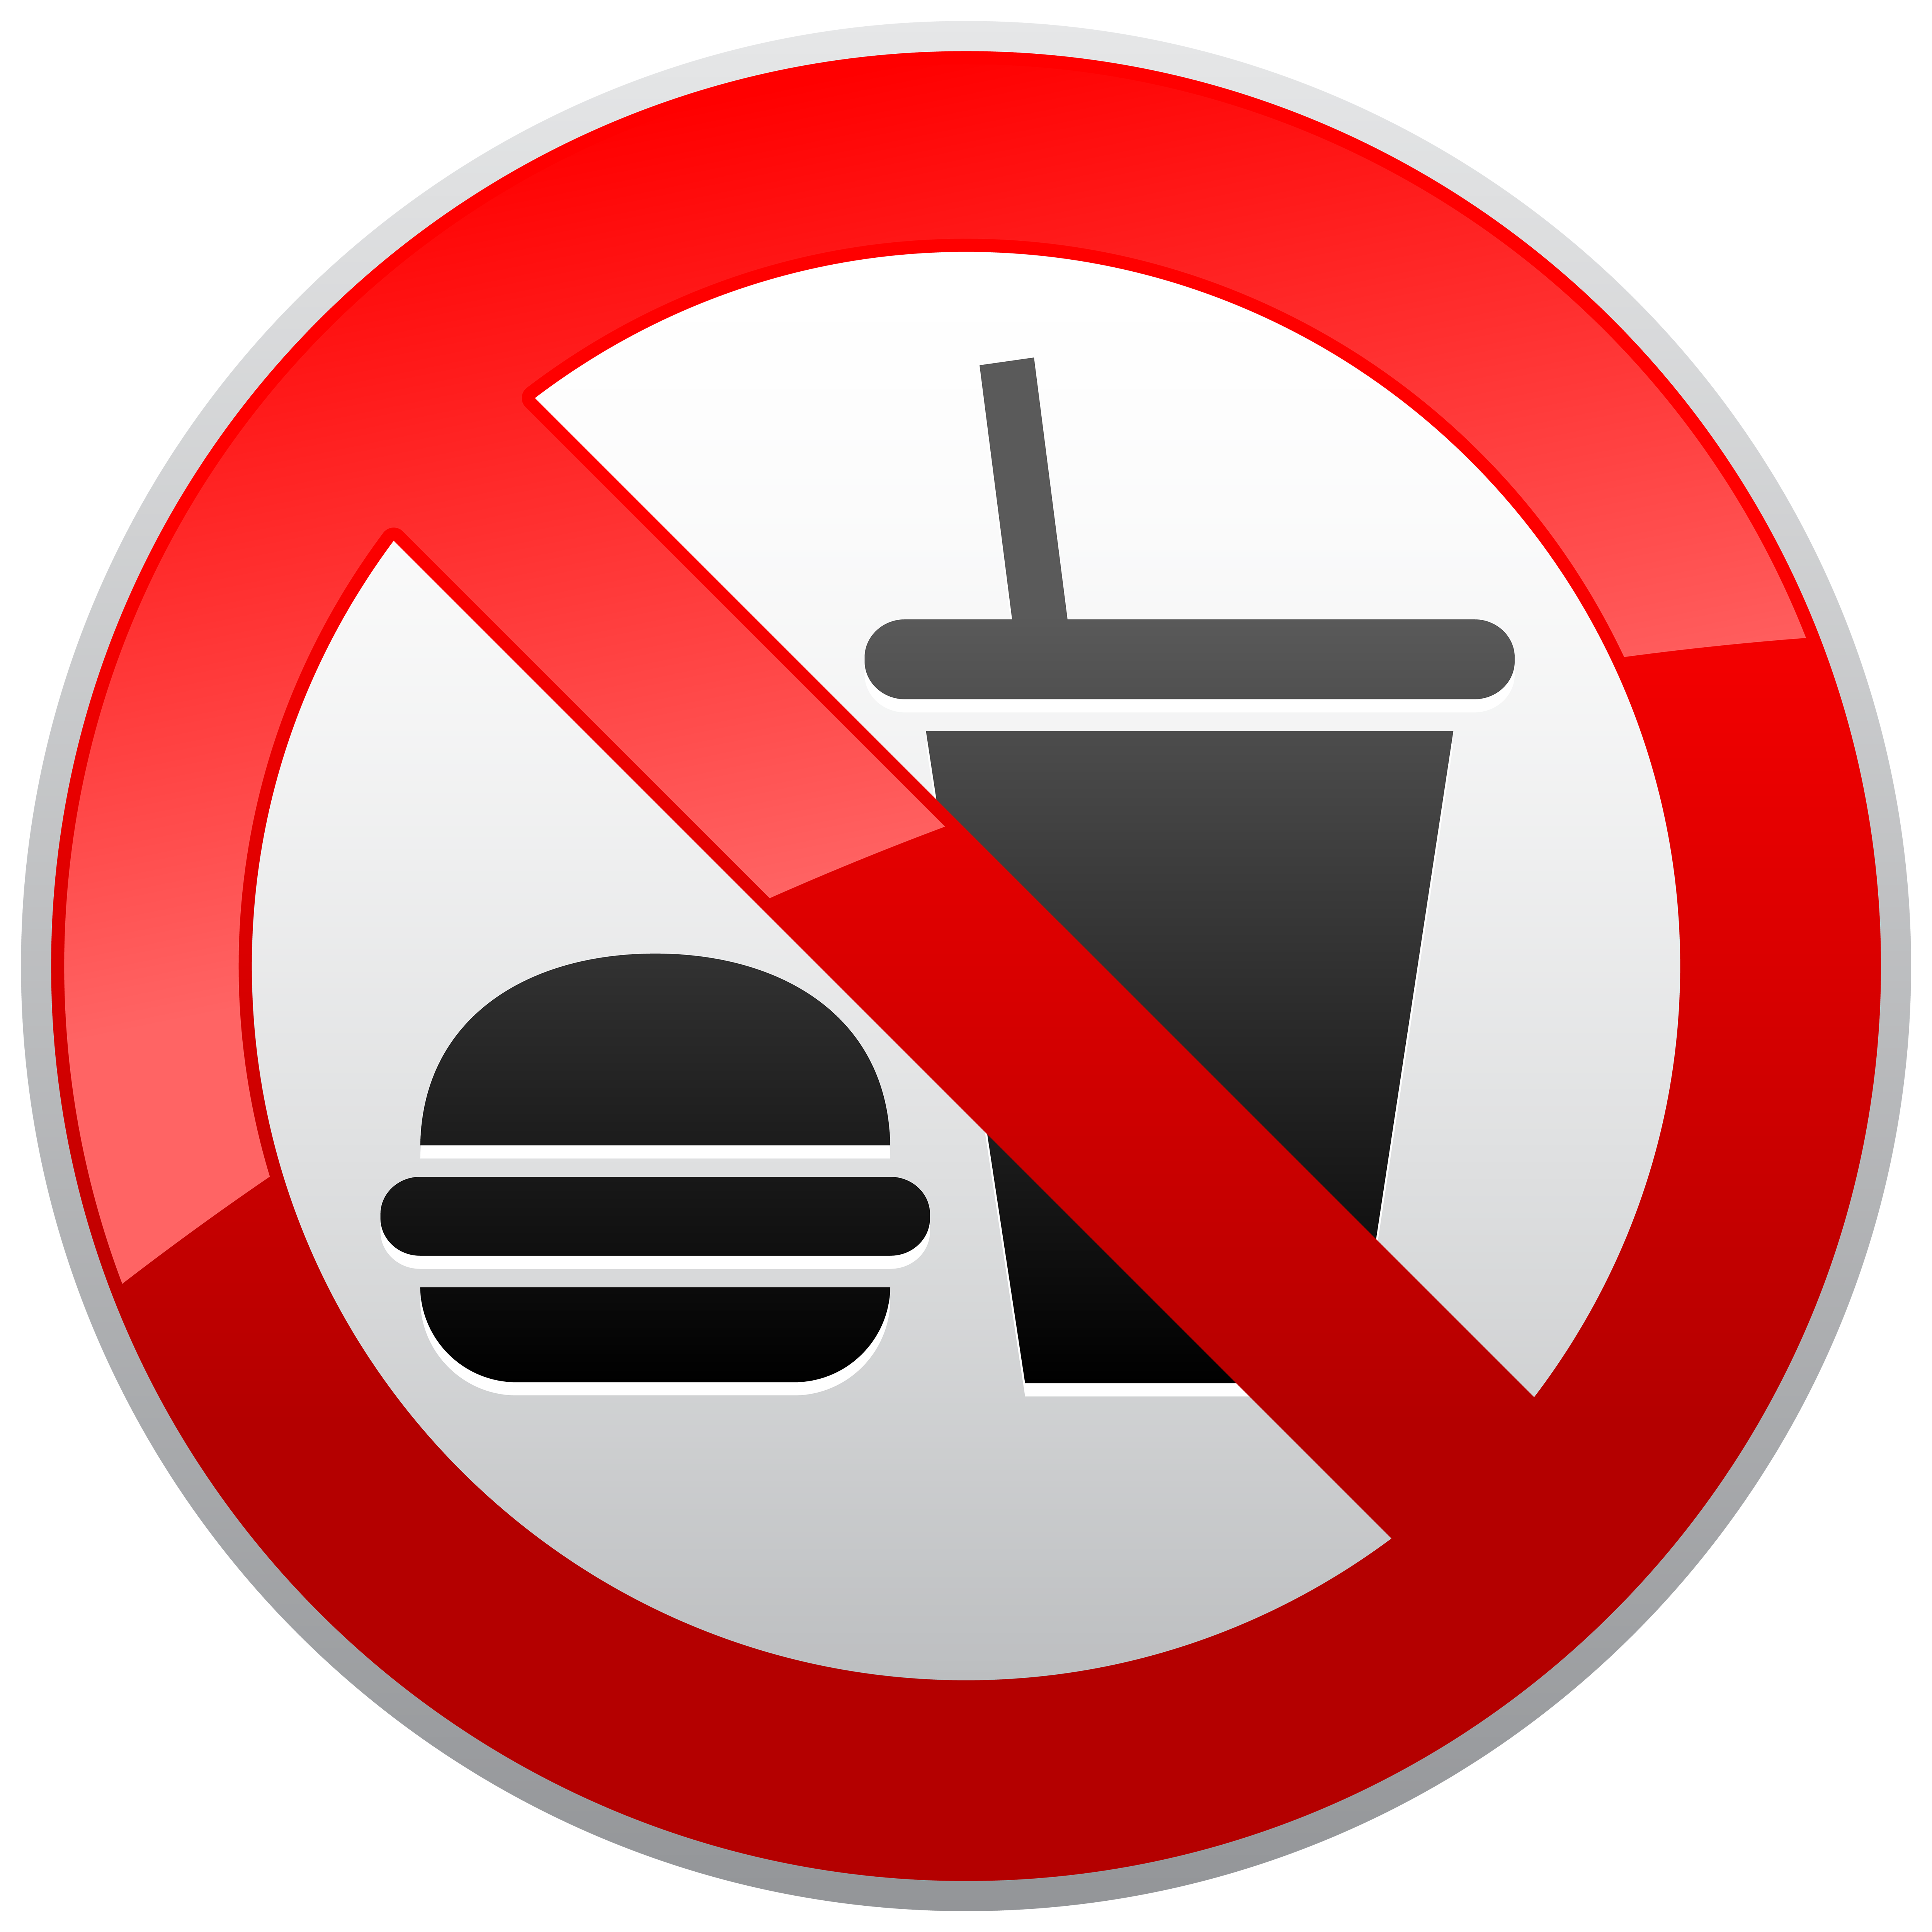 No eating in class clipart.